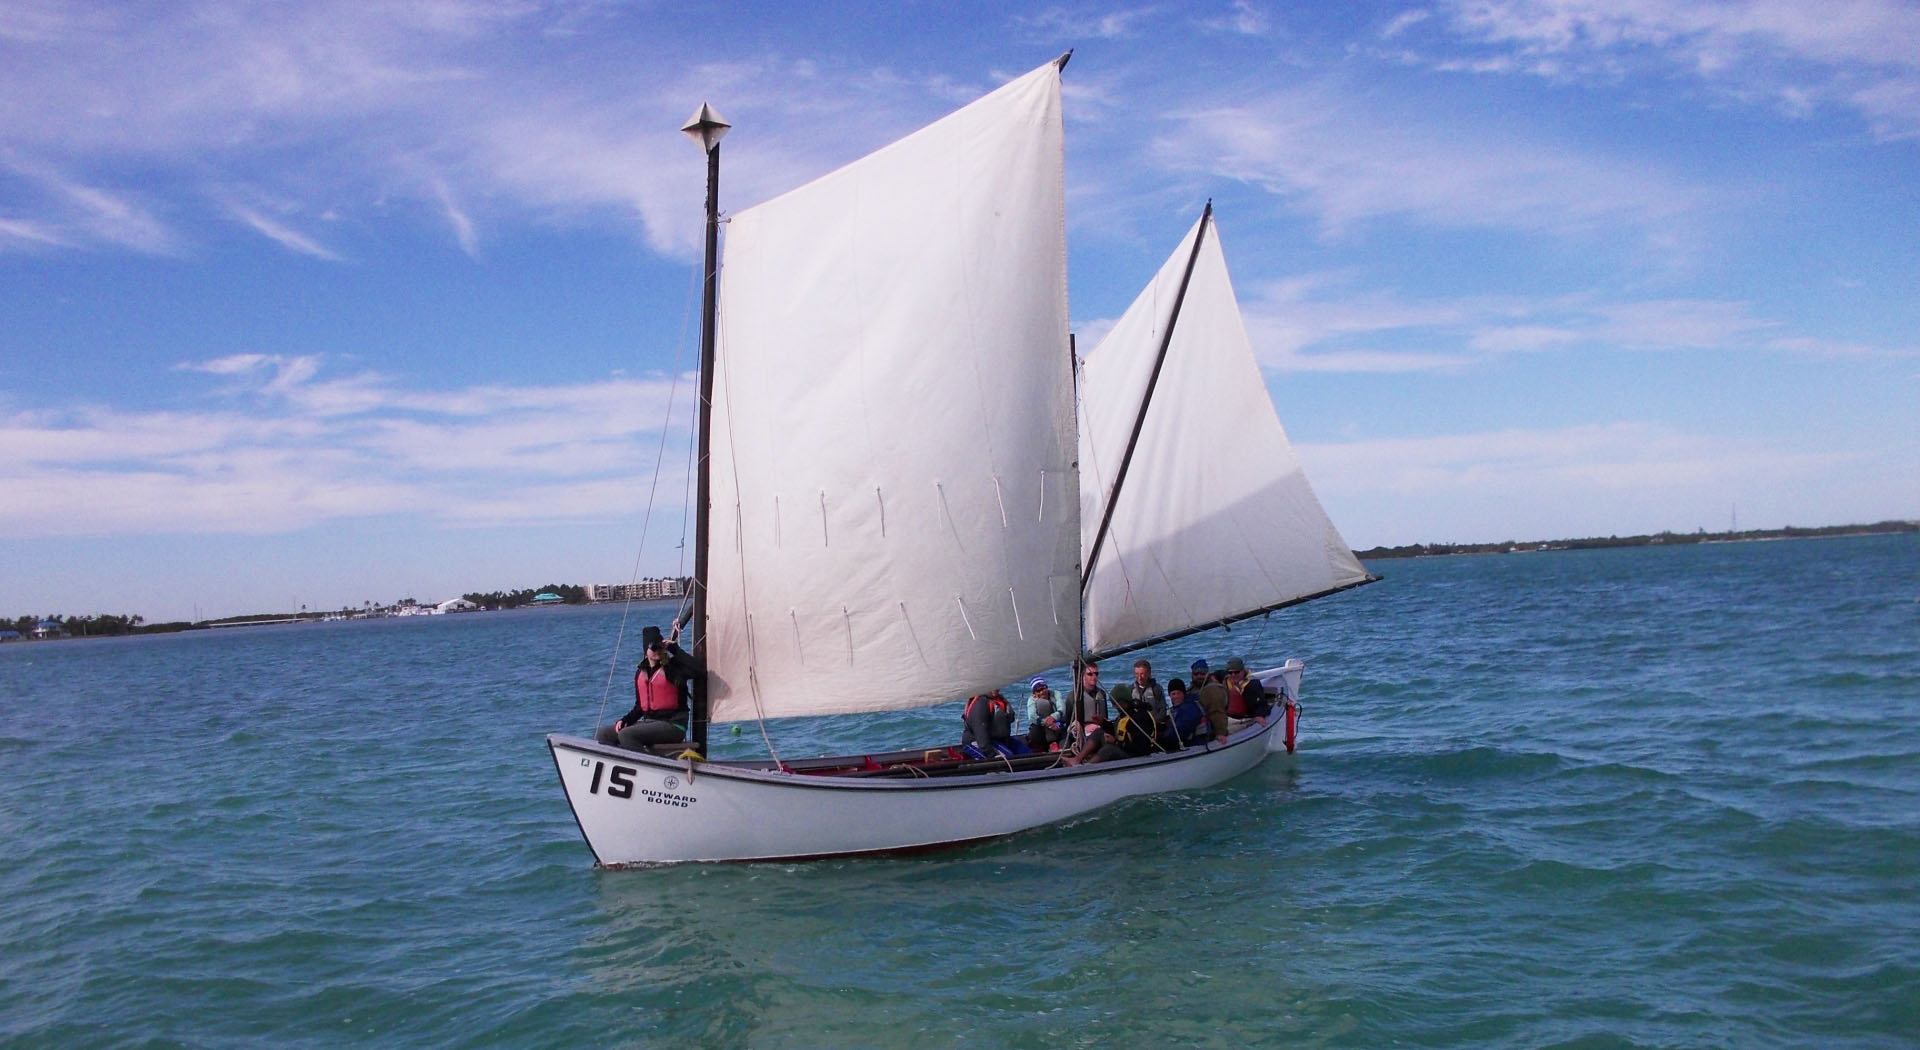 Florida keys sailing for adults outward bound upcoming courses nvjuhfo Image collections